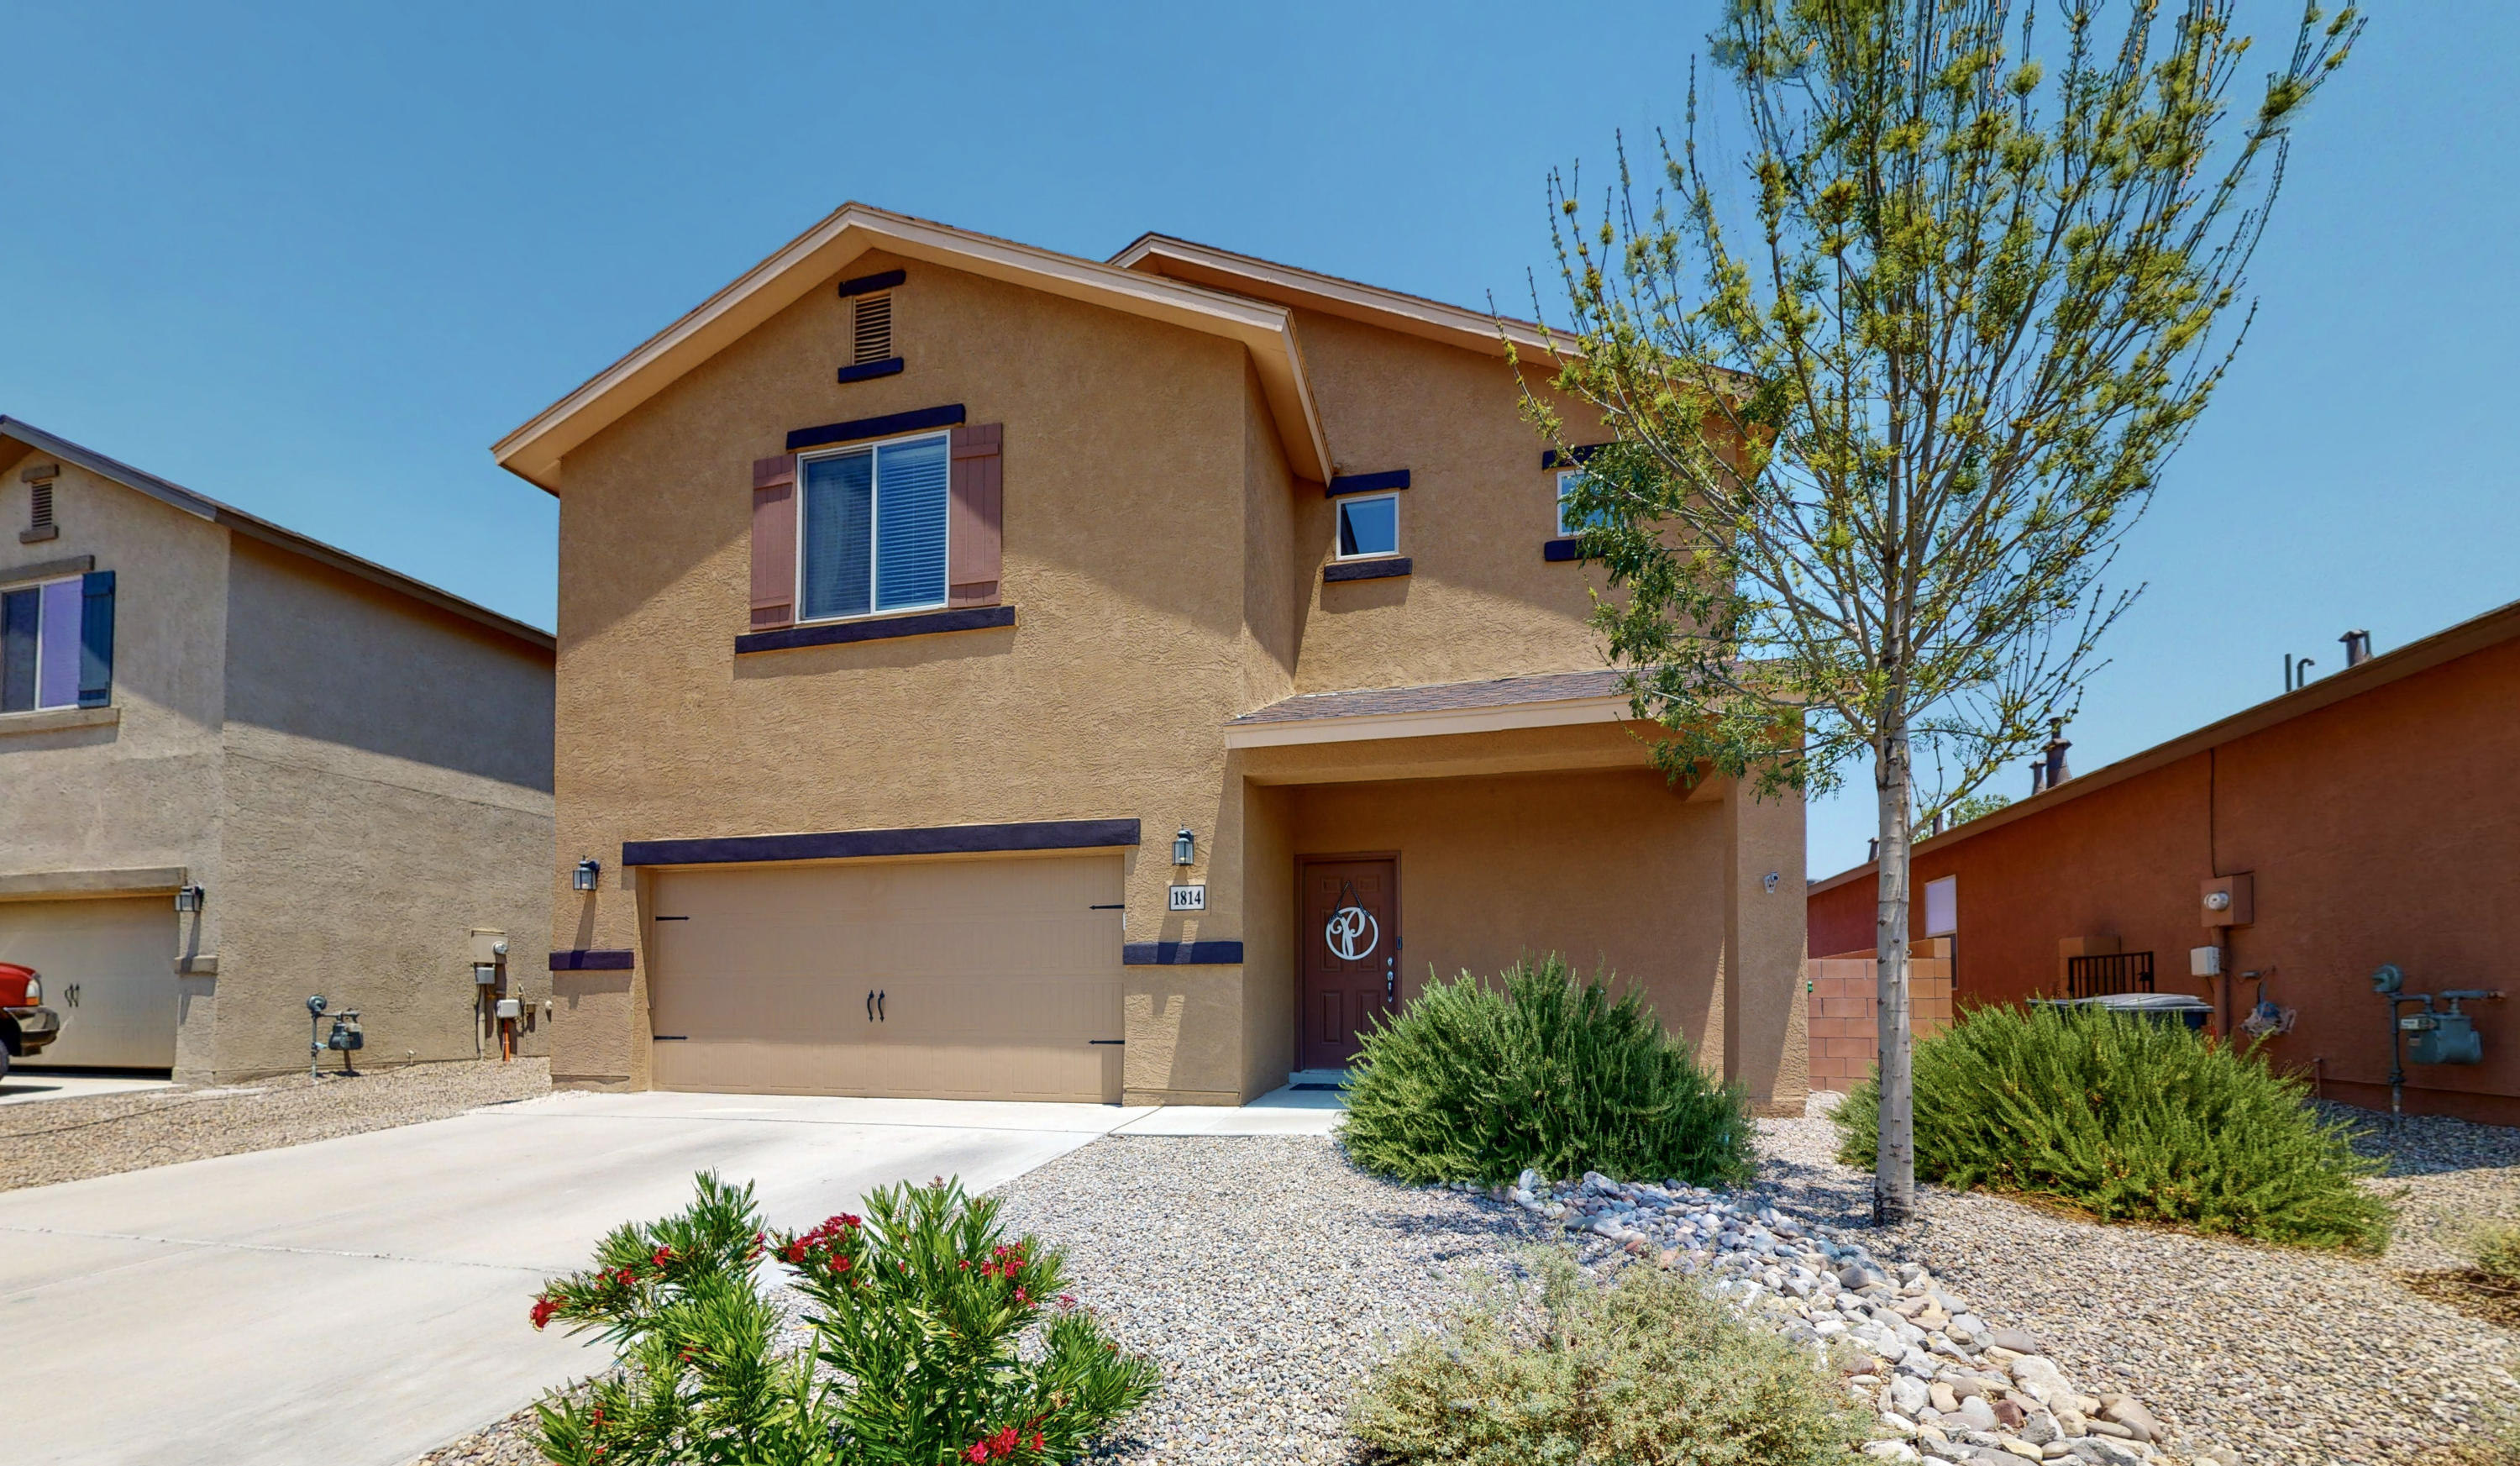 Located in the high range community! Don't miss this like-new LGI home with four-bedrooms, three-bathrooms and 9 ft tall ceilings!  This home features updated modern lighting throughout, refrigerated air,and is landscaped front and back! The must-see Kitchen boasts Granite Countertops, Under-mount Stainless Steel Sink, Stained Maple Cabinets in a rich Nutmeg color w/ crown molding, gas Range and Large Island! Luxurious Master bathroom features double sinks, separate garden tub and shower. Close to Santa Ana Star Center, Rio Rancho Aquatic Center, and Rio Rancho Middle school. Schedule a private showing or take a virtual walkthrough tour!